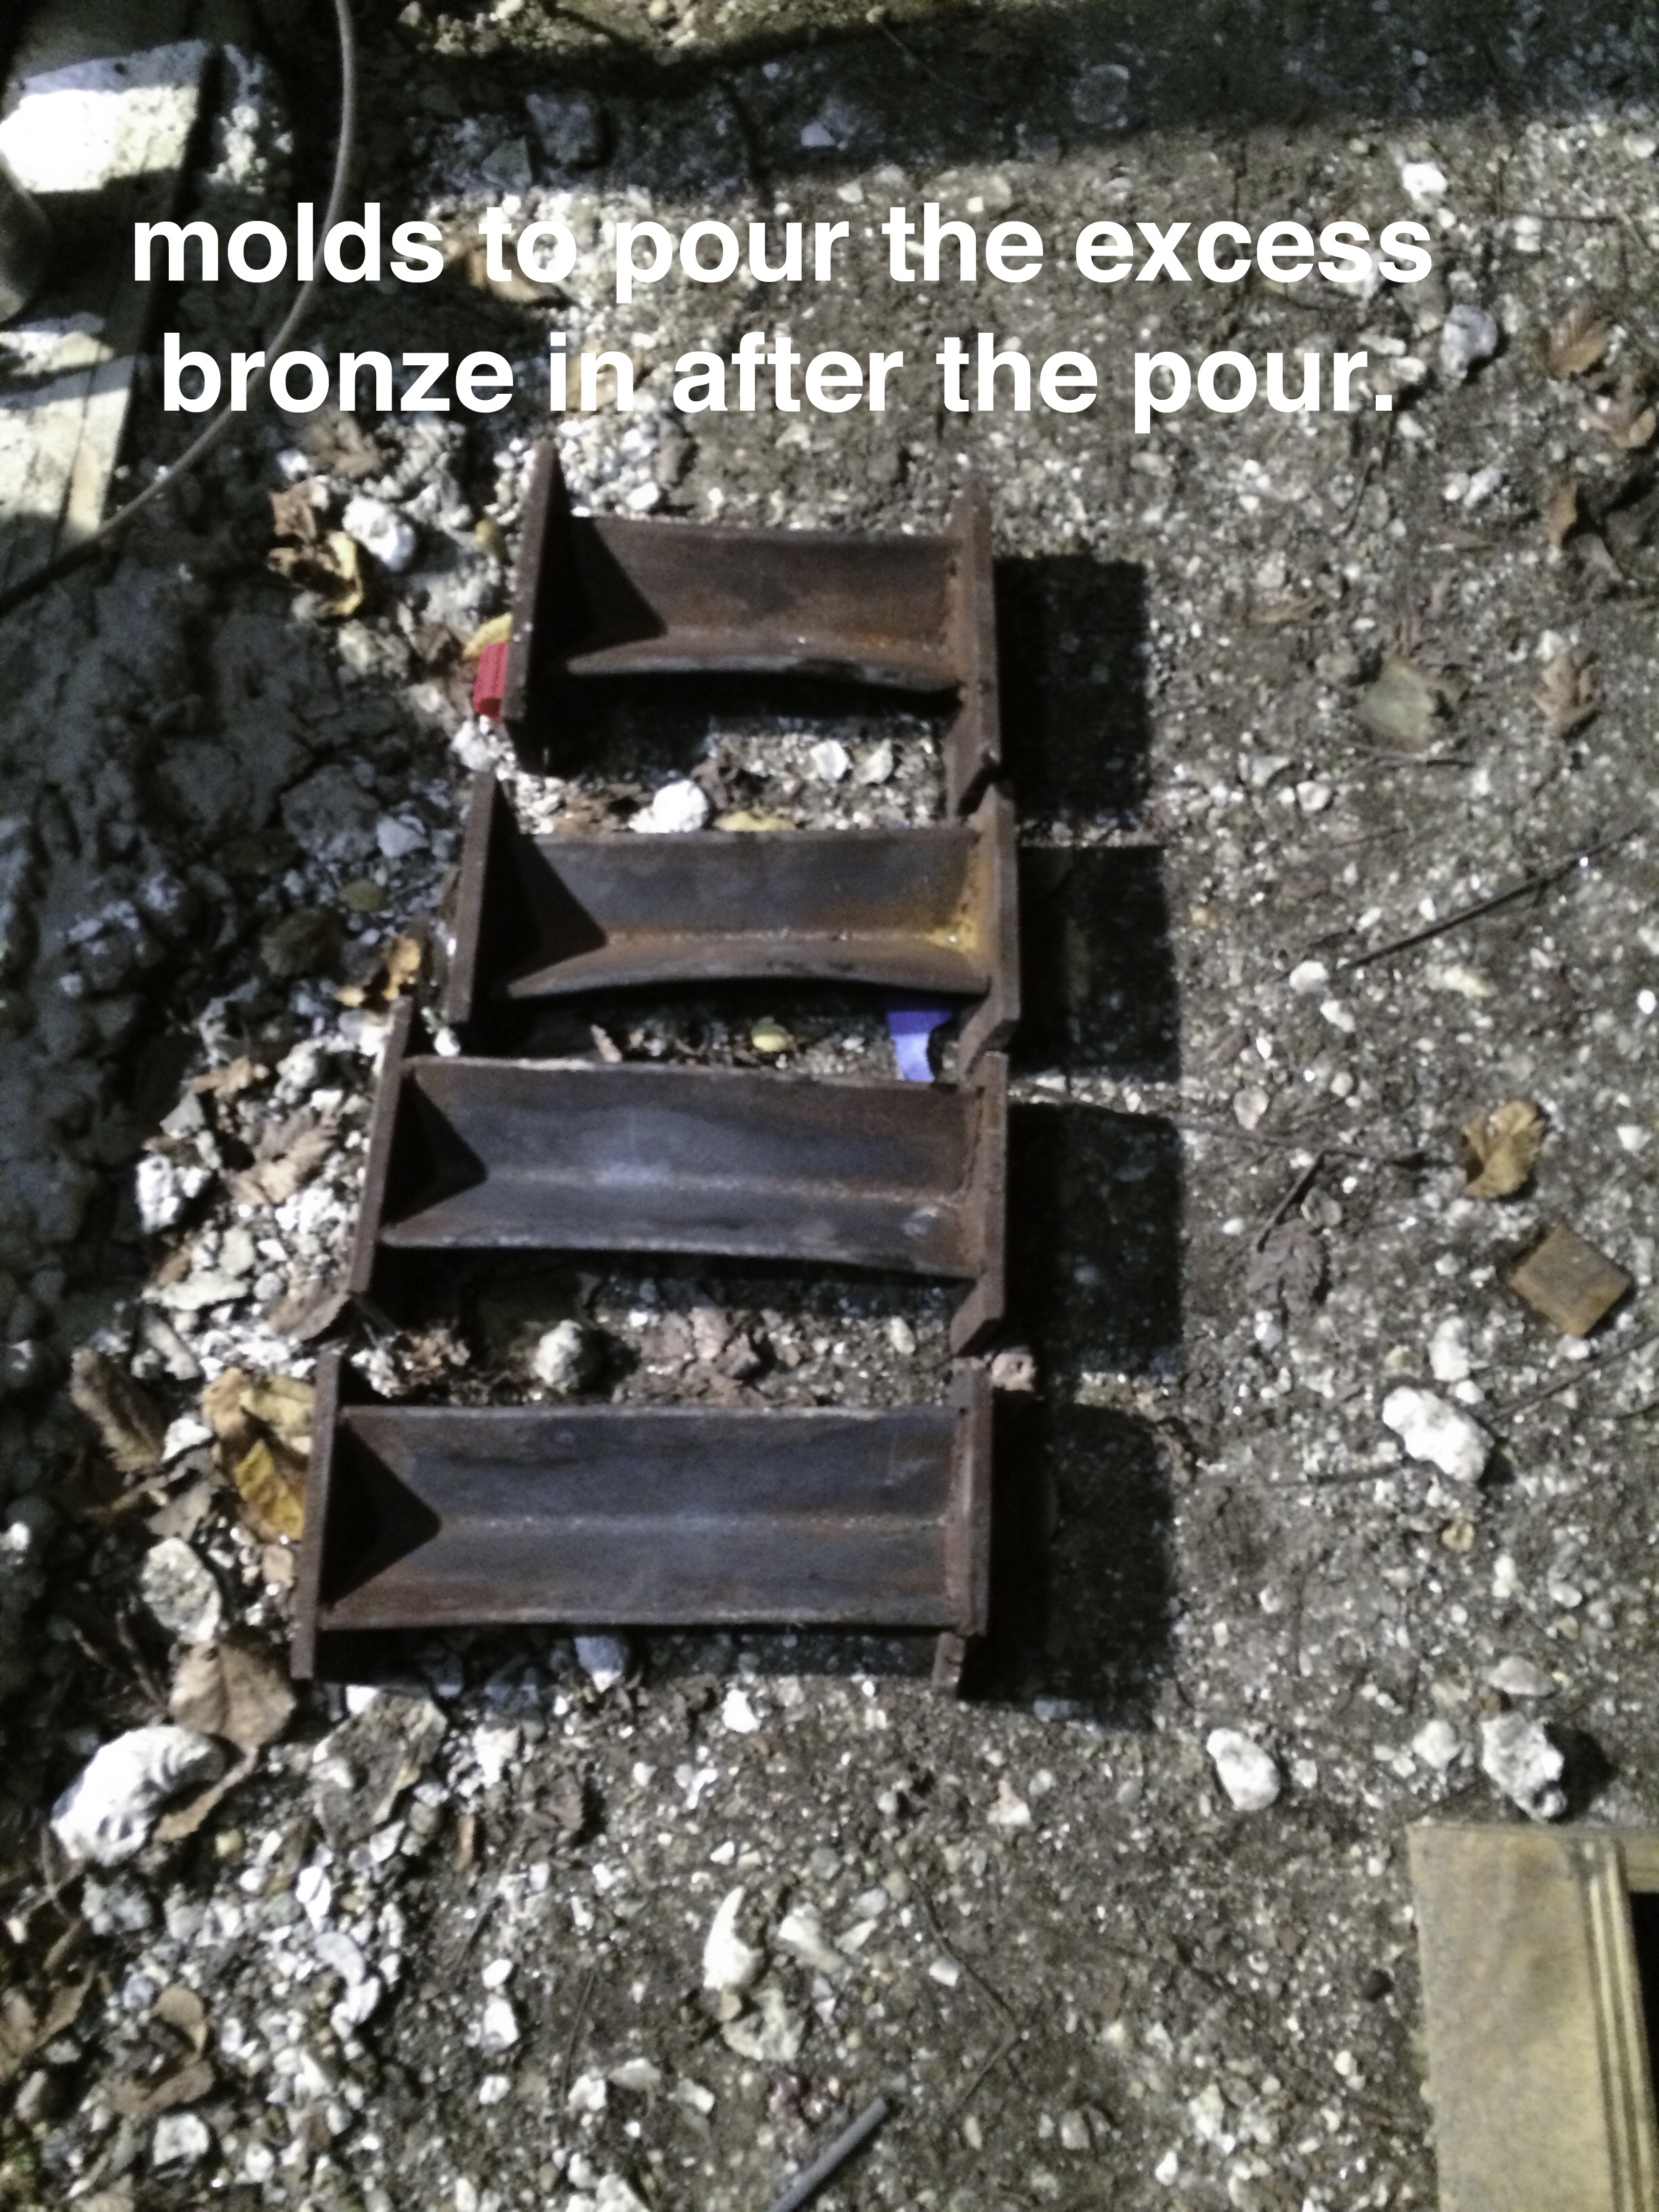 Molds for excess bronze